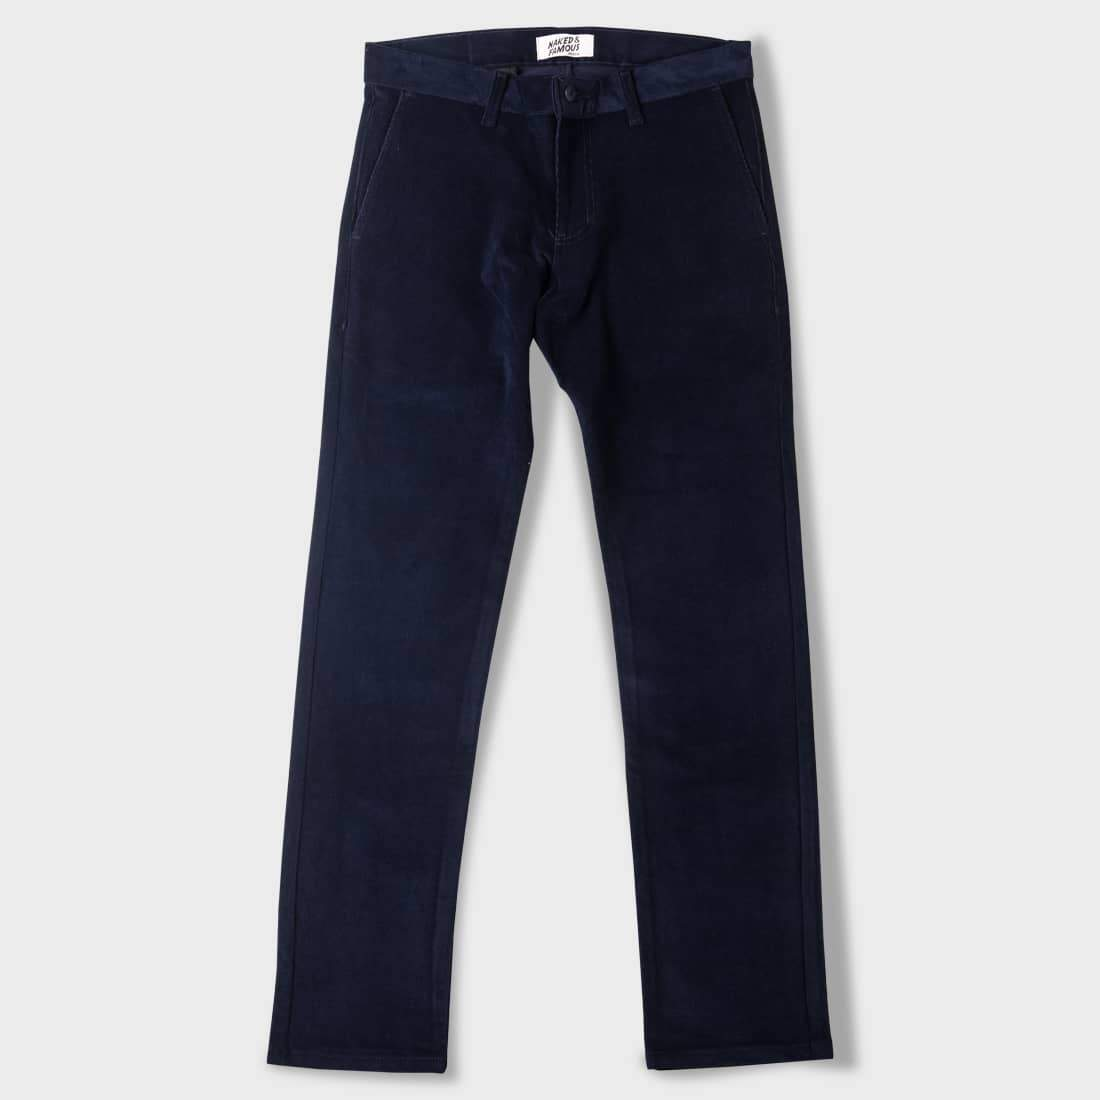 Naked & Famous Slim Chino 2-Way Stretch Corduroy Navy